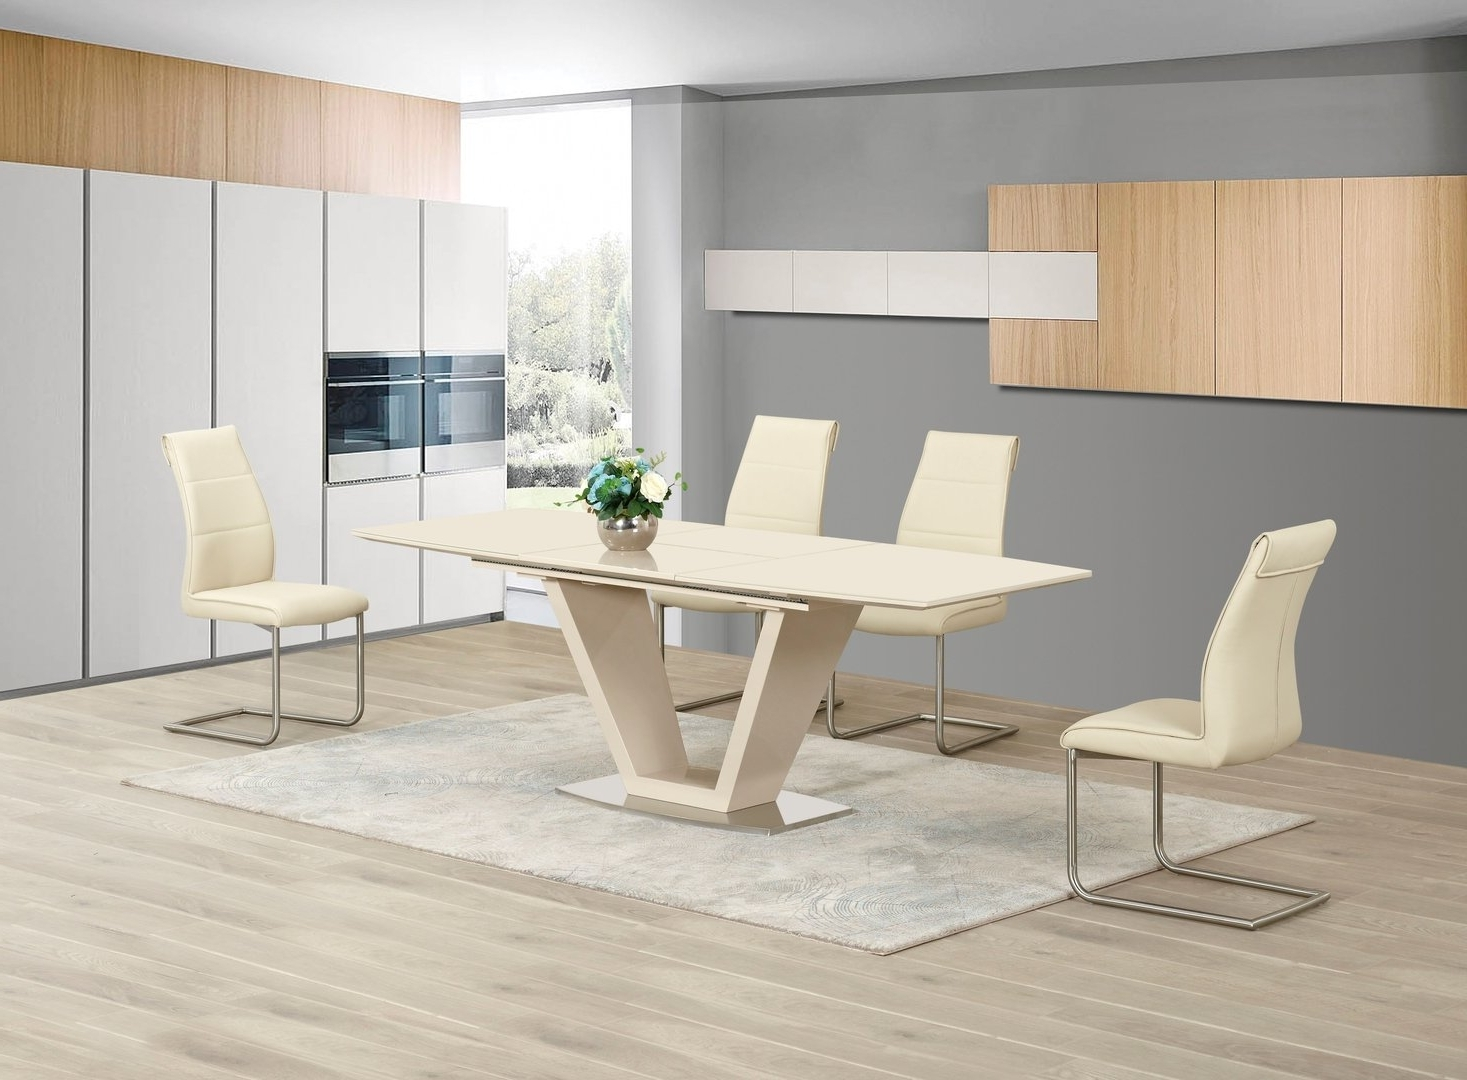 Cream Dining Tables And Chairs Regarding Most Up To Date Extending Cream Glass High Gloss Dining Table And 8 Cream Chairs (View 1 of 25)